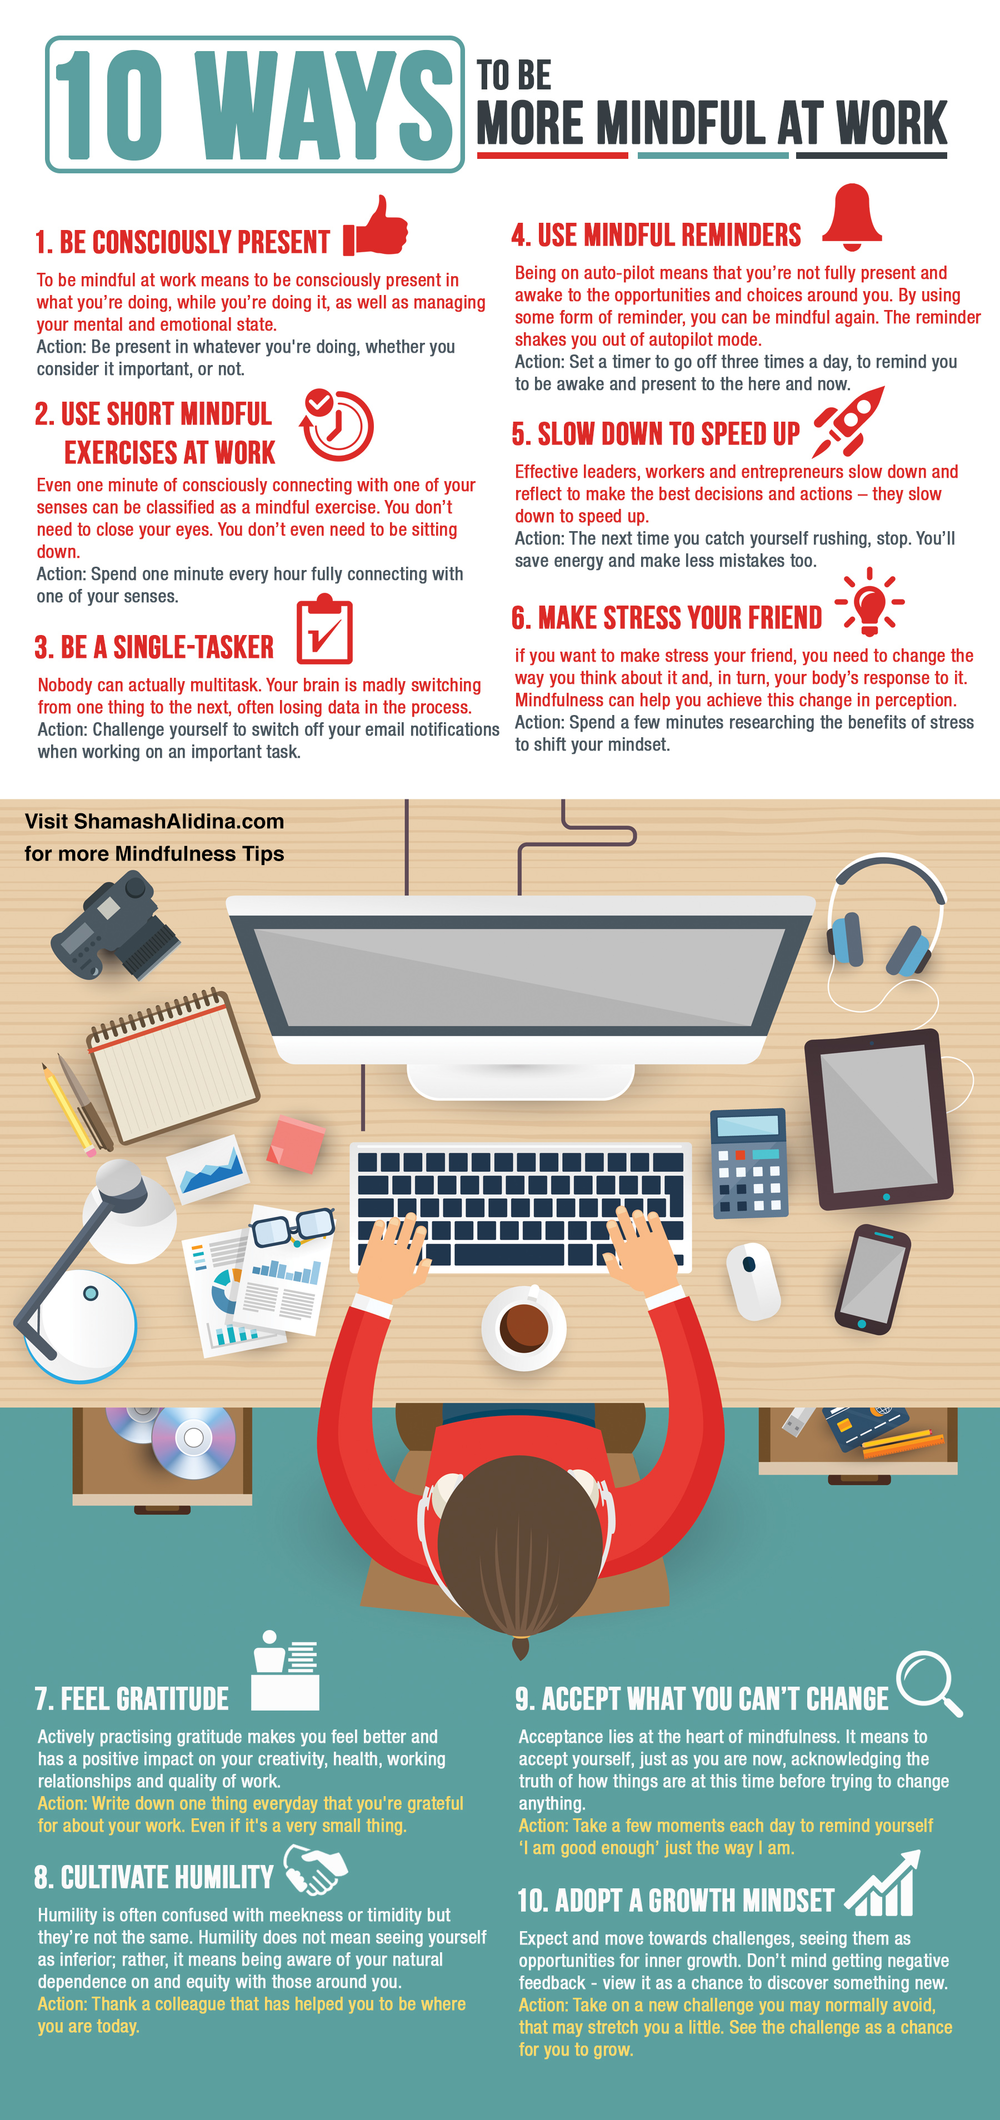 mindfulness+at+work+infographic.png